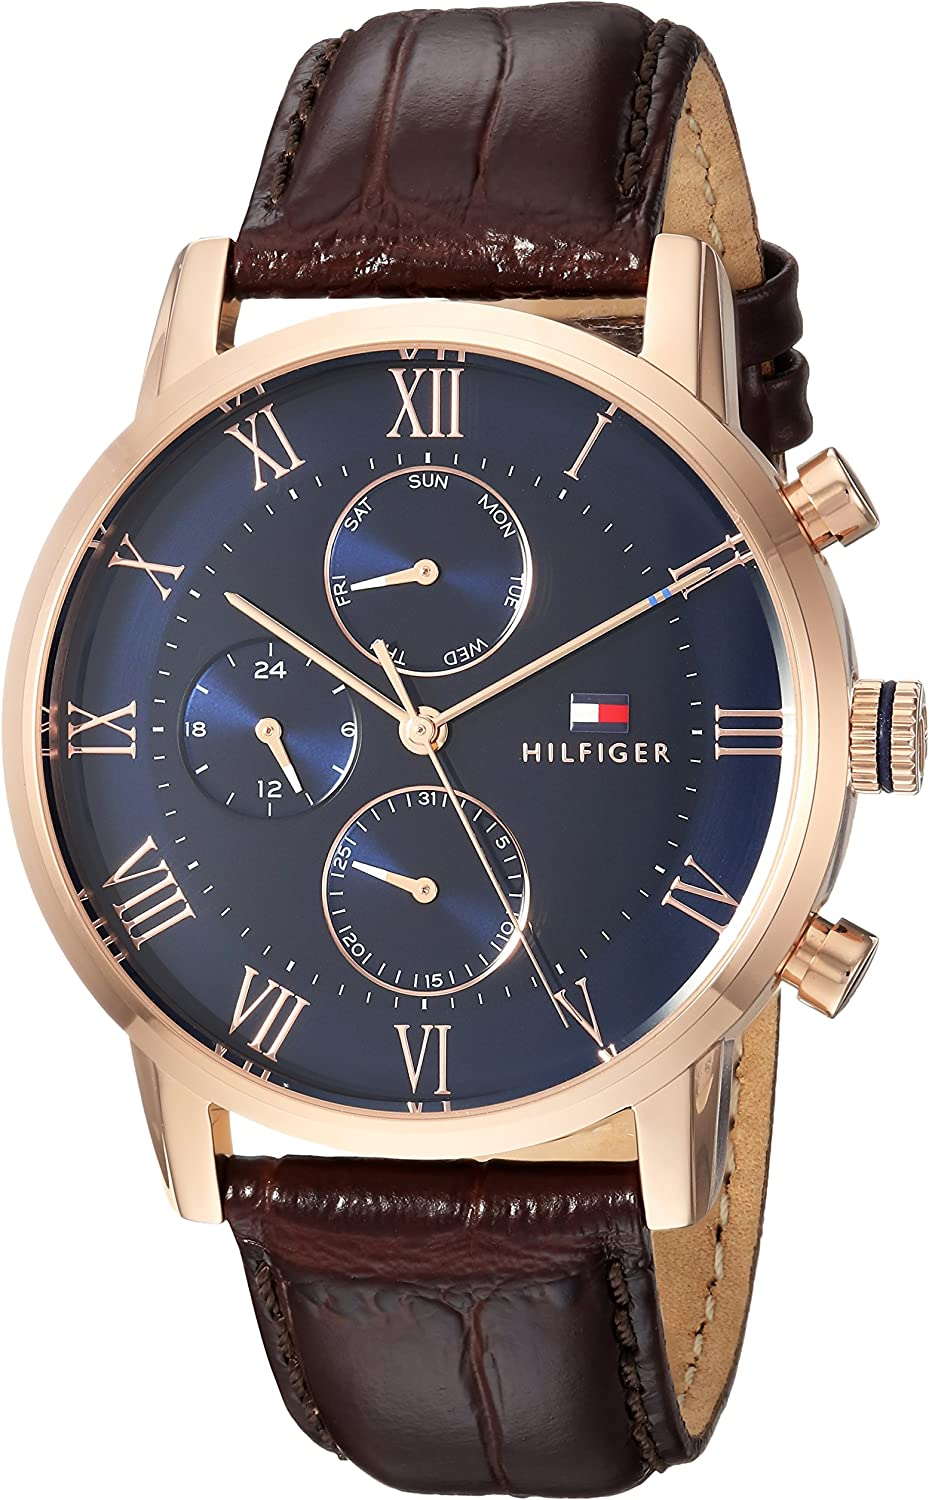 Tommy Hilfiger Men's Sophisticated Sport Stainless Steel Quartz Watch with Leather Strap, Brown, 22 (Model: 1791399)